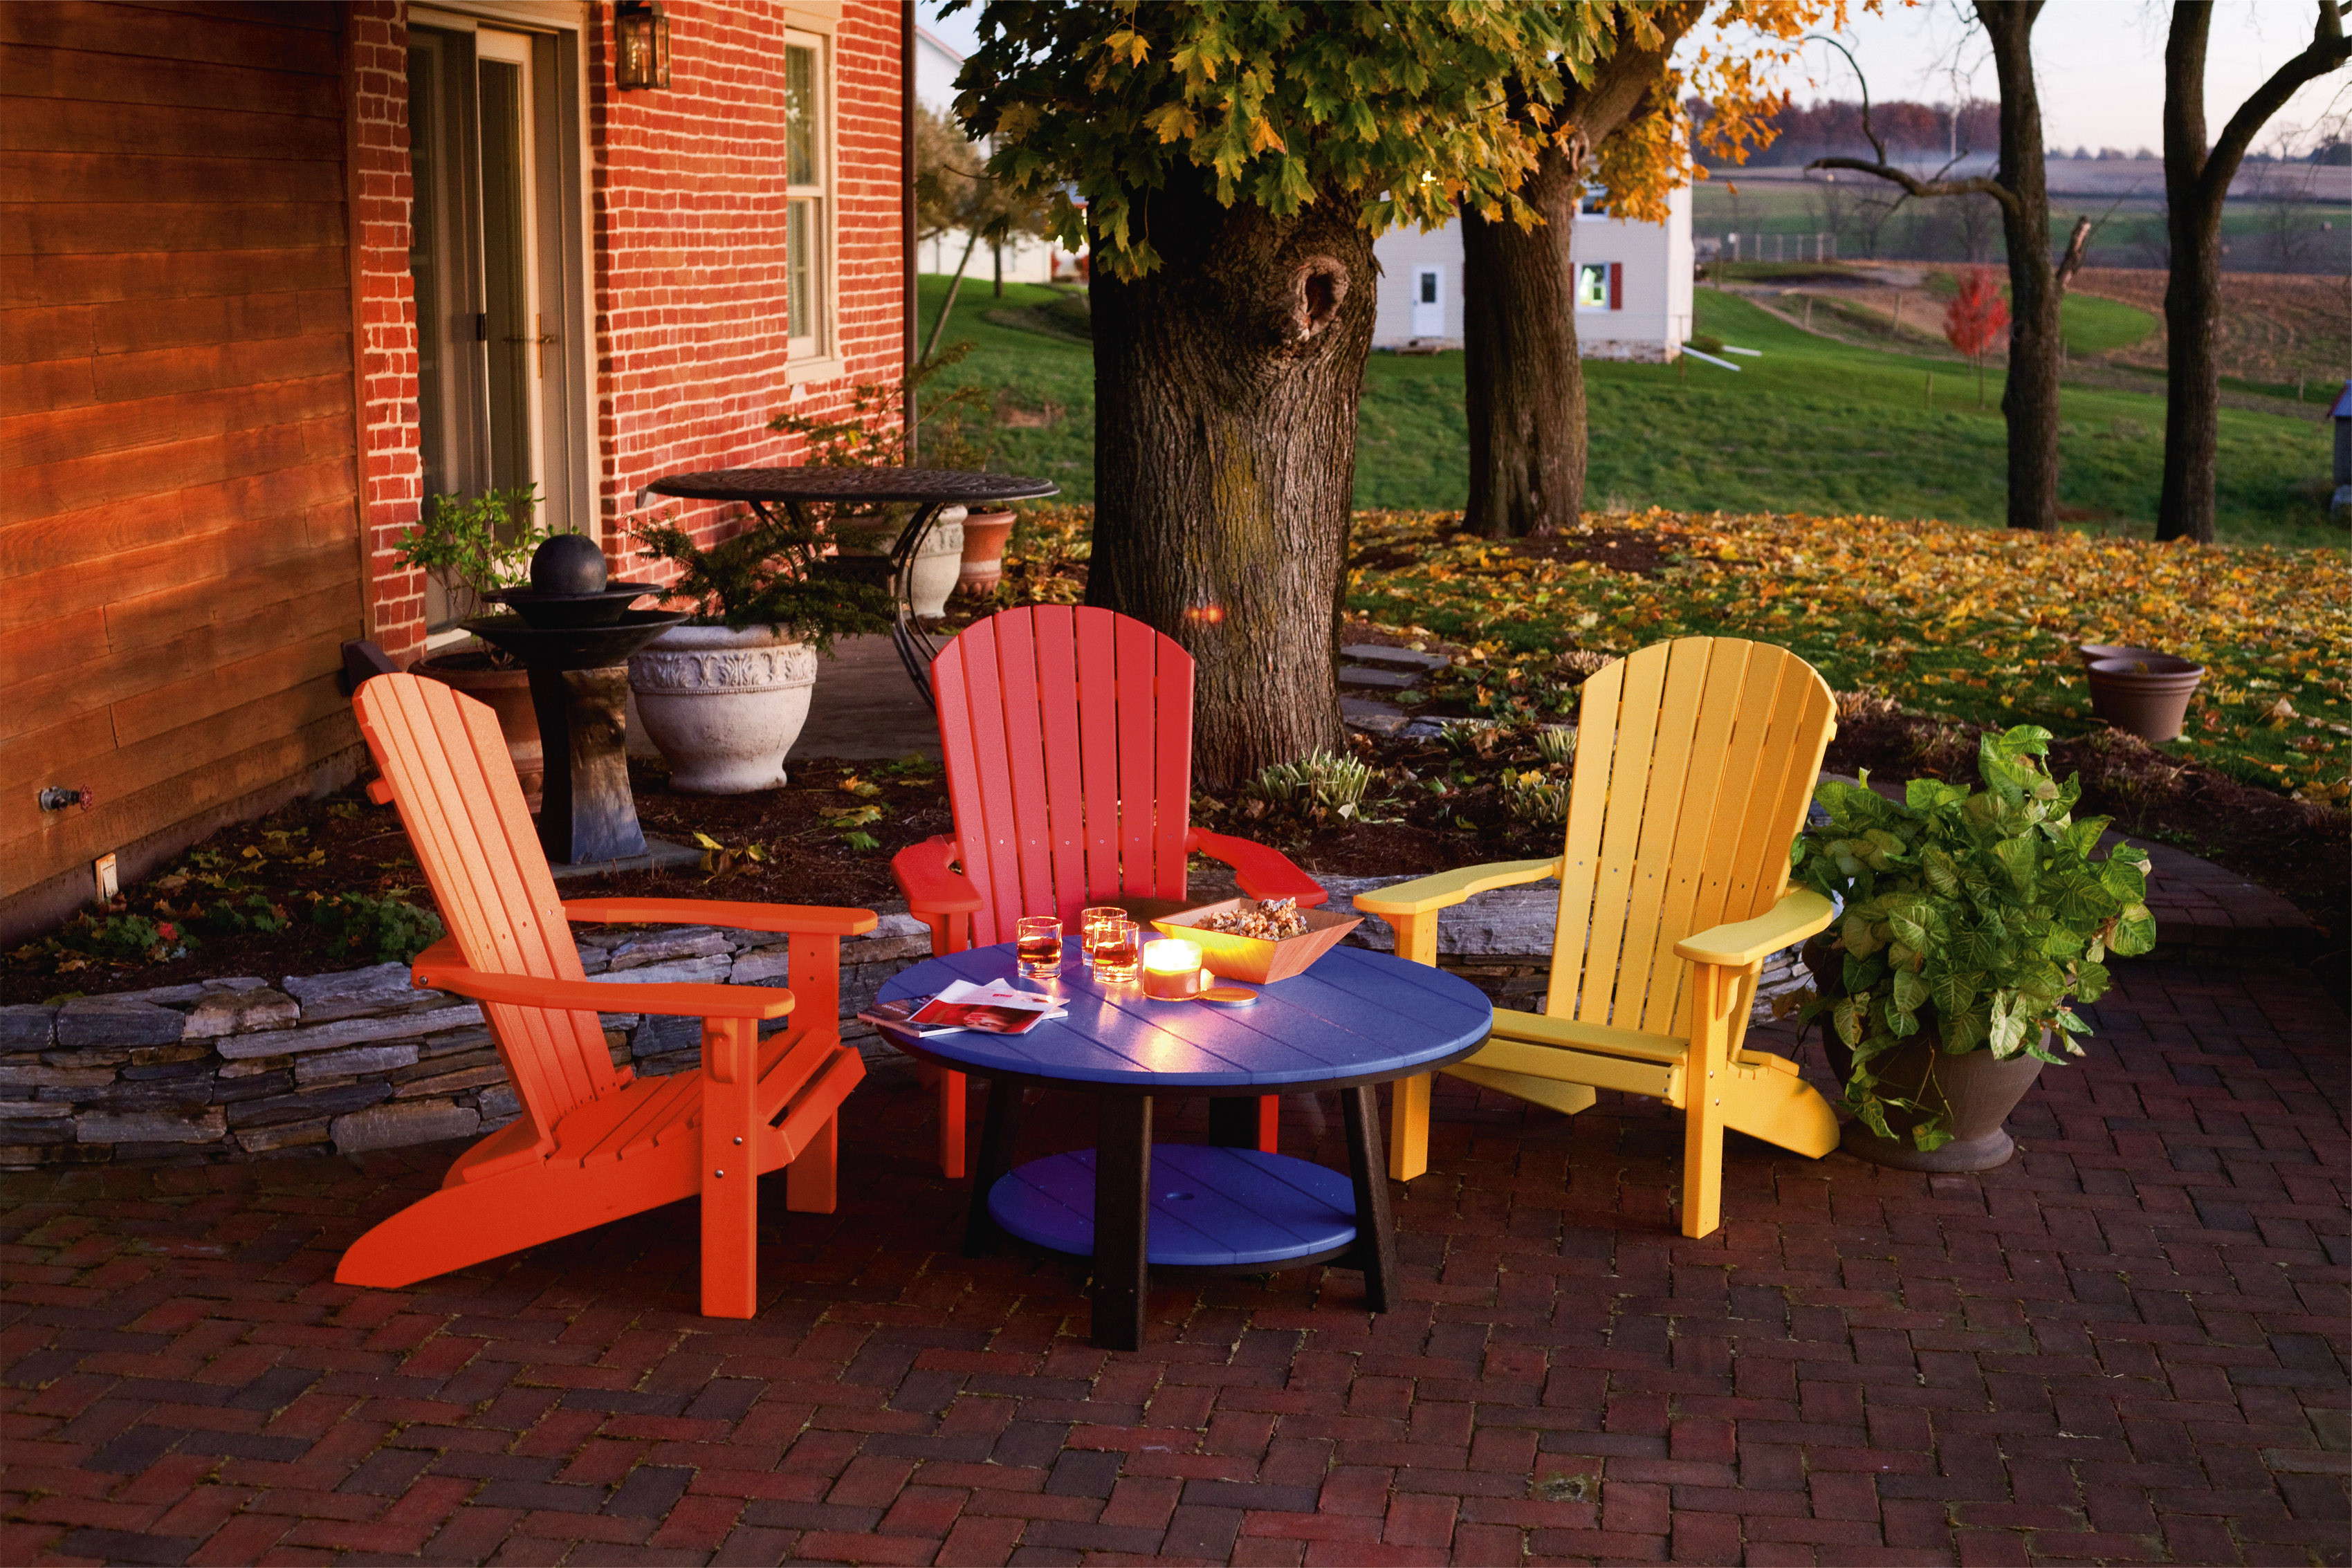 Fan Back Polywood Adirondack Chairs - Orange, Red & Yellow (Conversation Table sold separately)